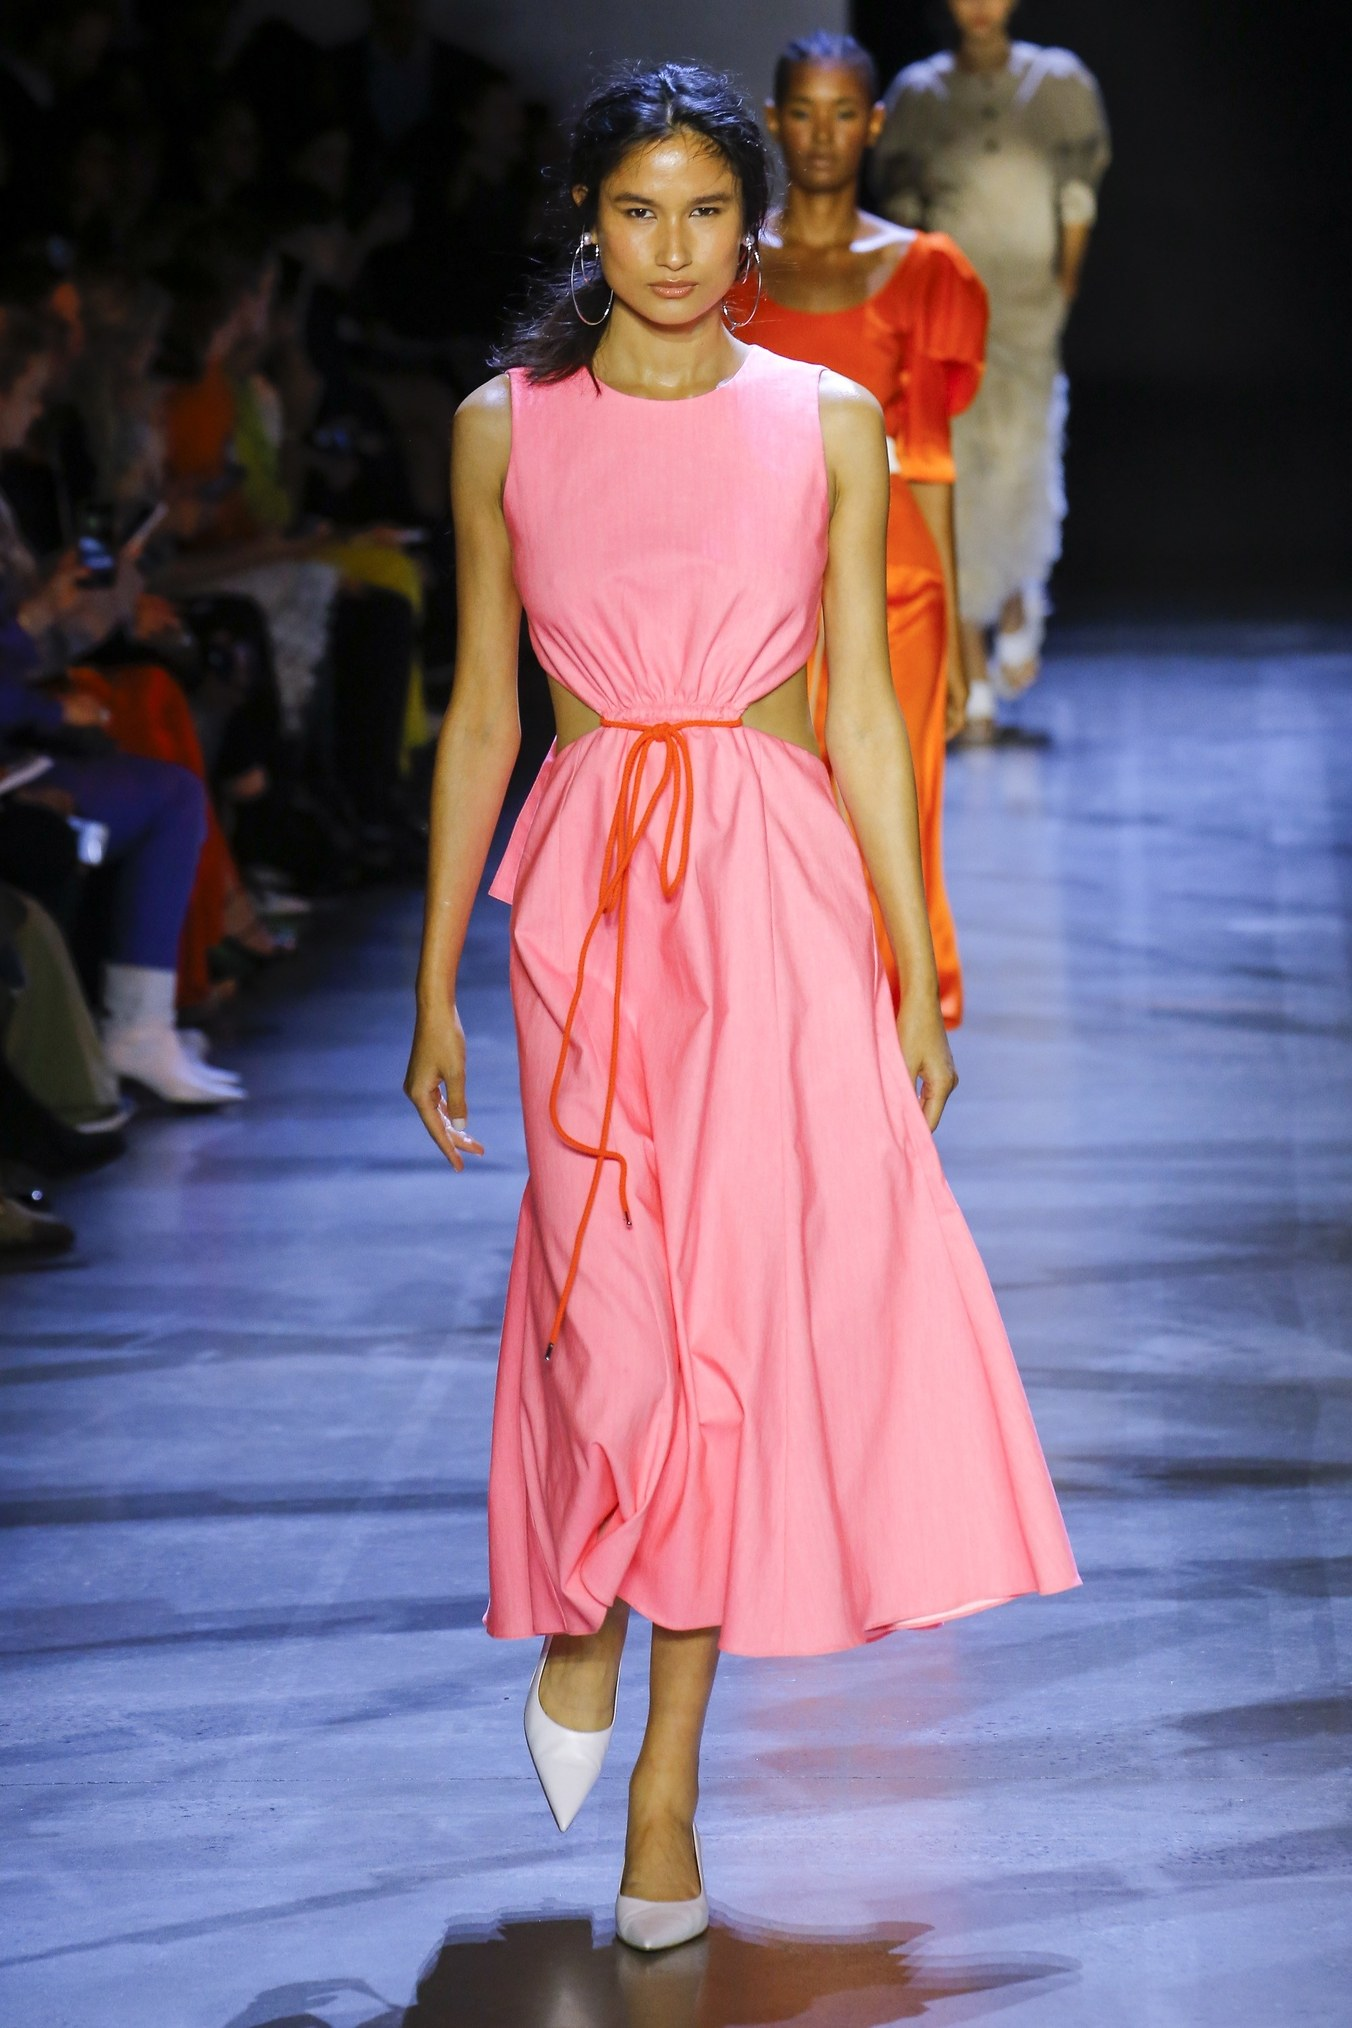 prabal gurung Pink | NYFW Spring 2019 | Harry and Gretel